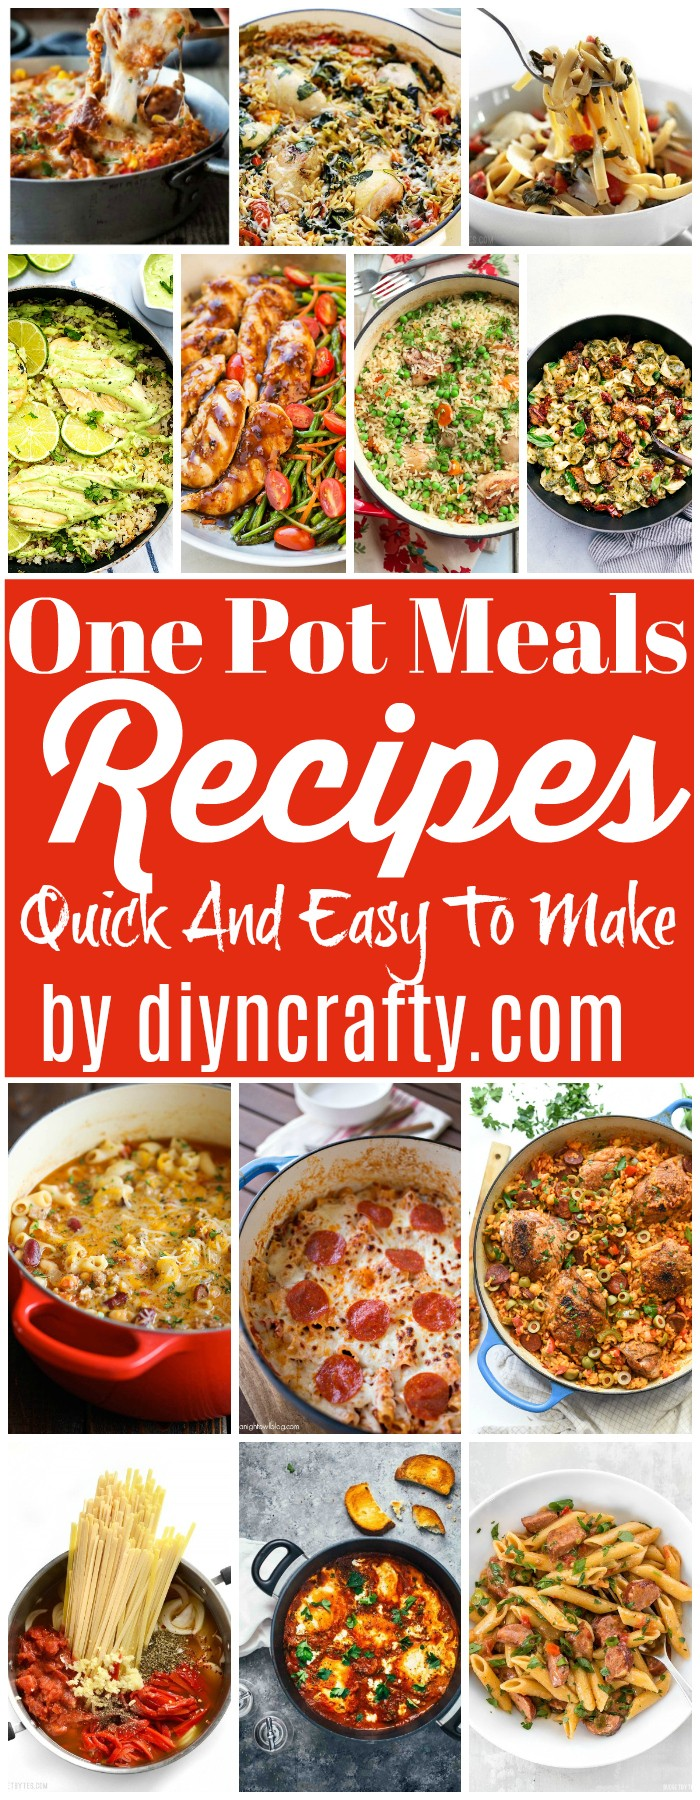 One Pot Meals Recipes